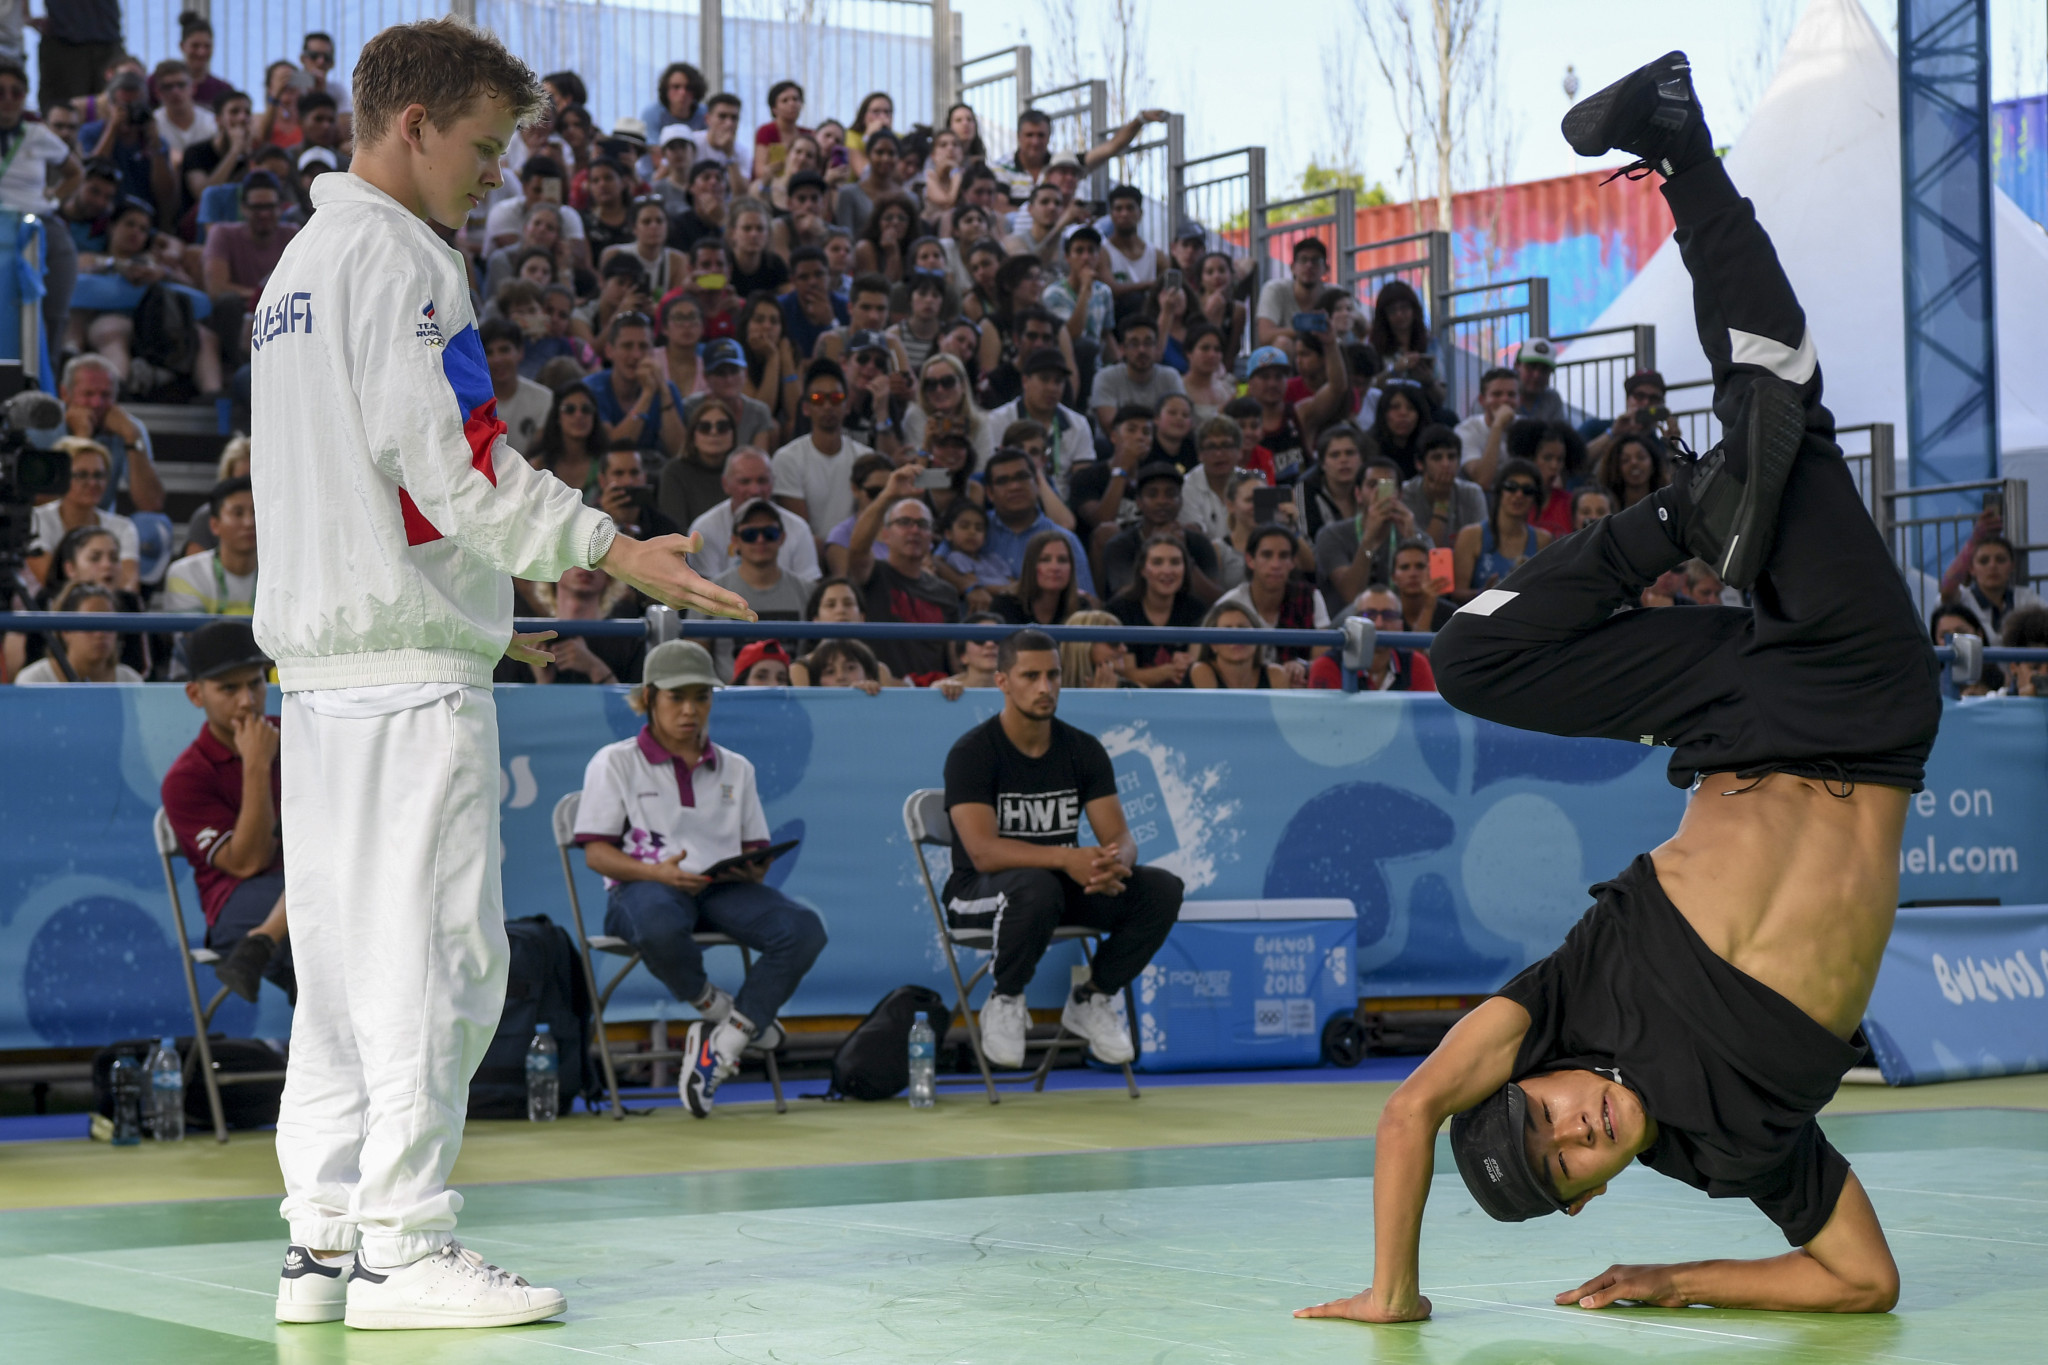 Exclusive: WDSF President excited by prospect of breakdancing being included on Paris 2024 Olympic programme